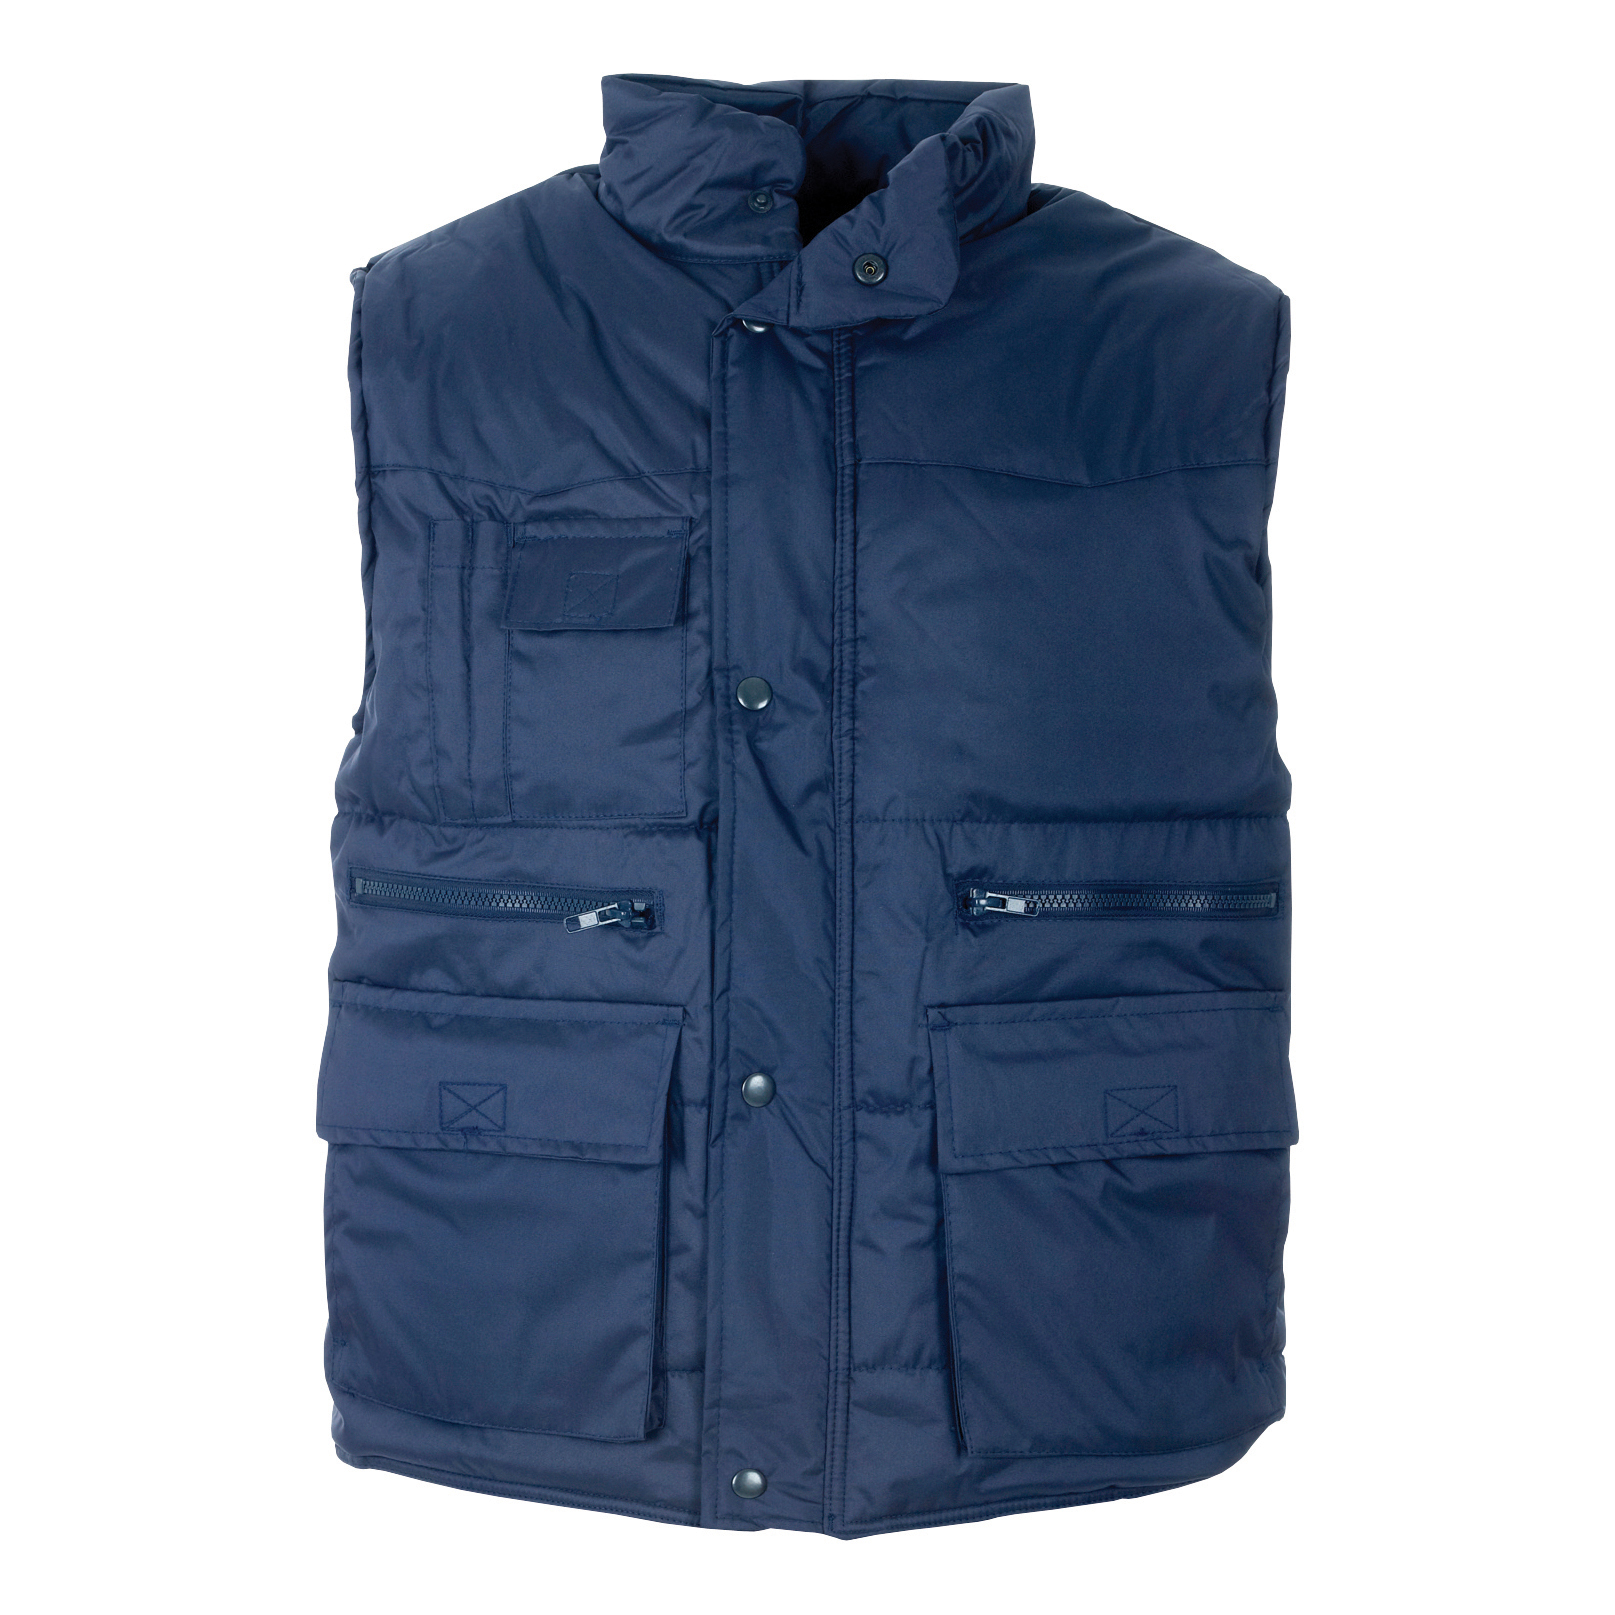 Body Warmer Polyester with Padding & Multi Pockets Large Navy Ref HBNL Approx 3 Day Leadtime